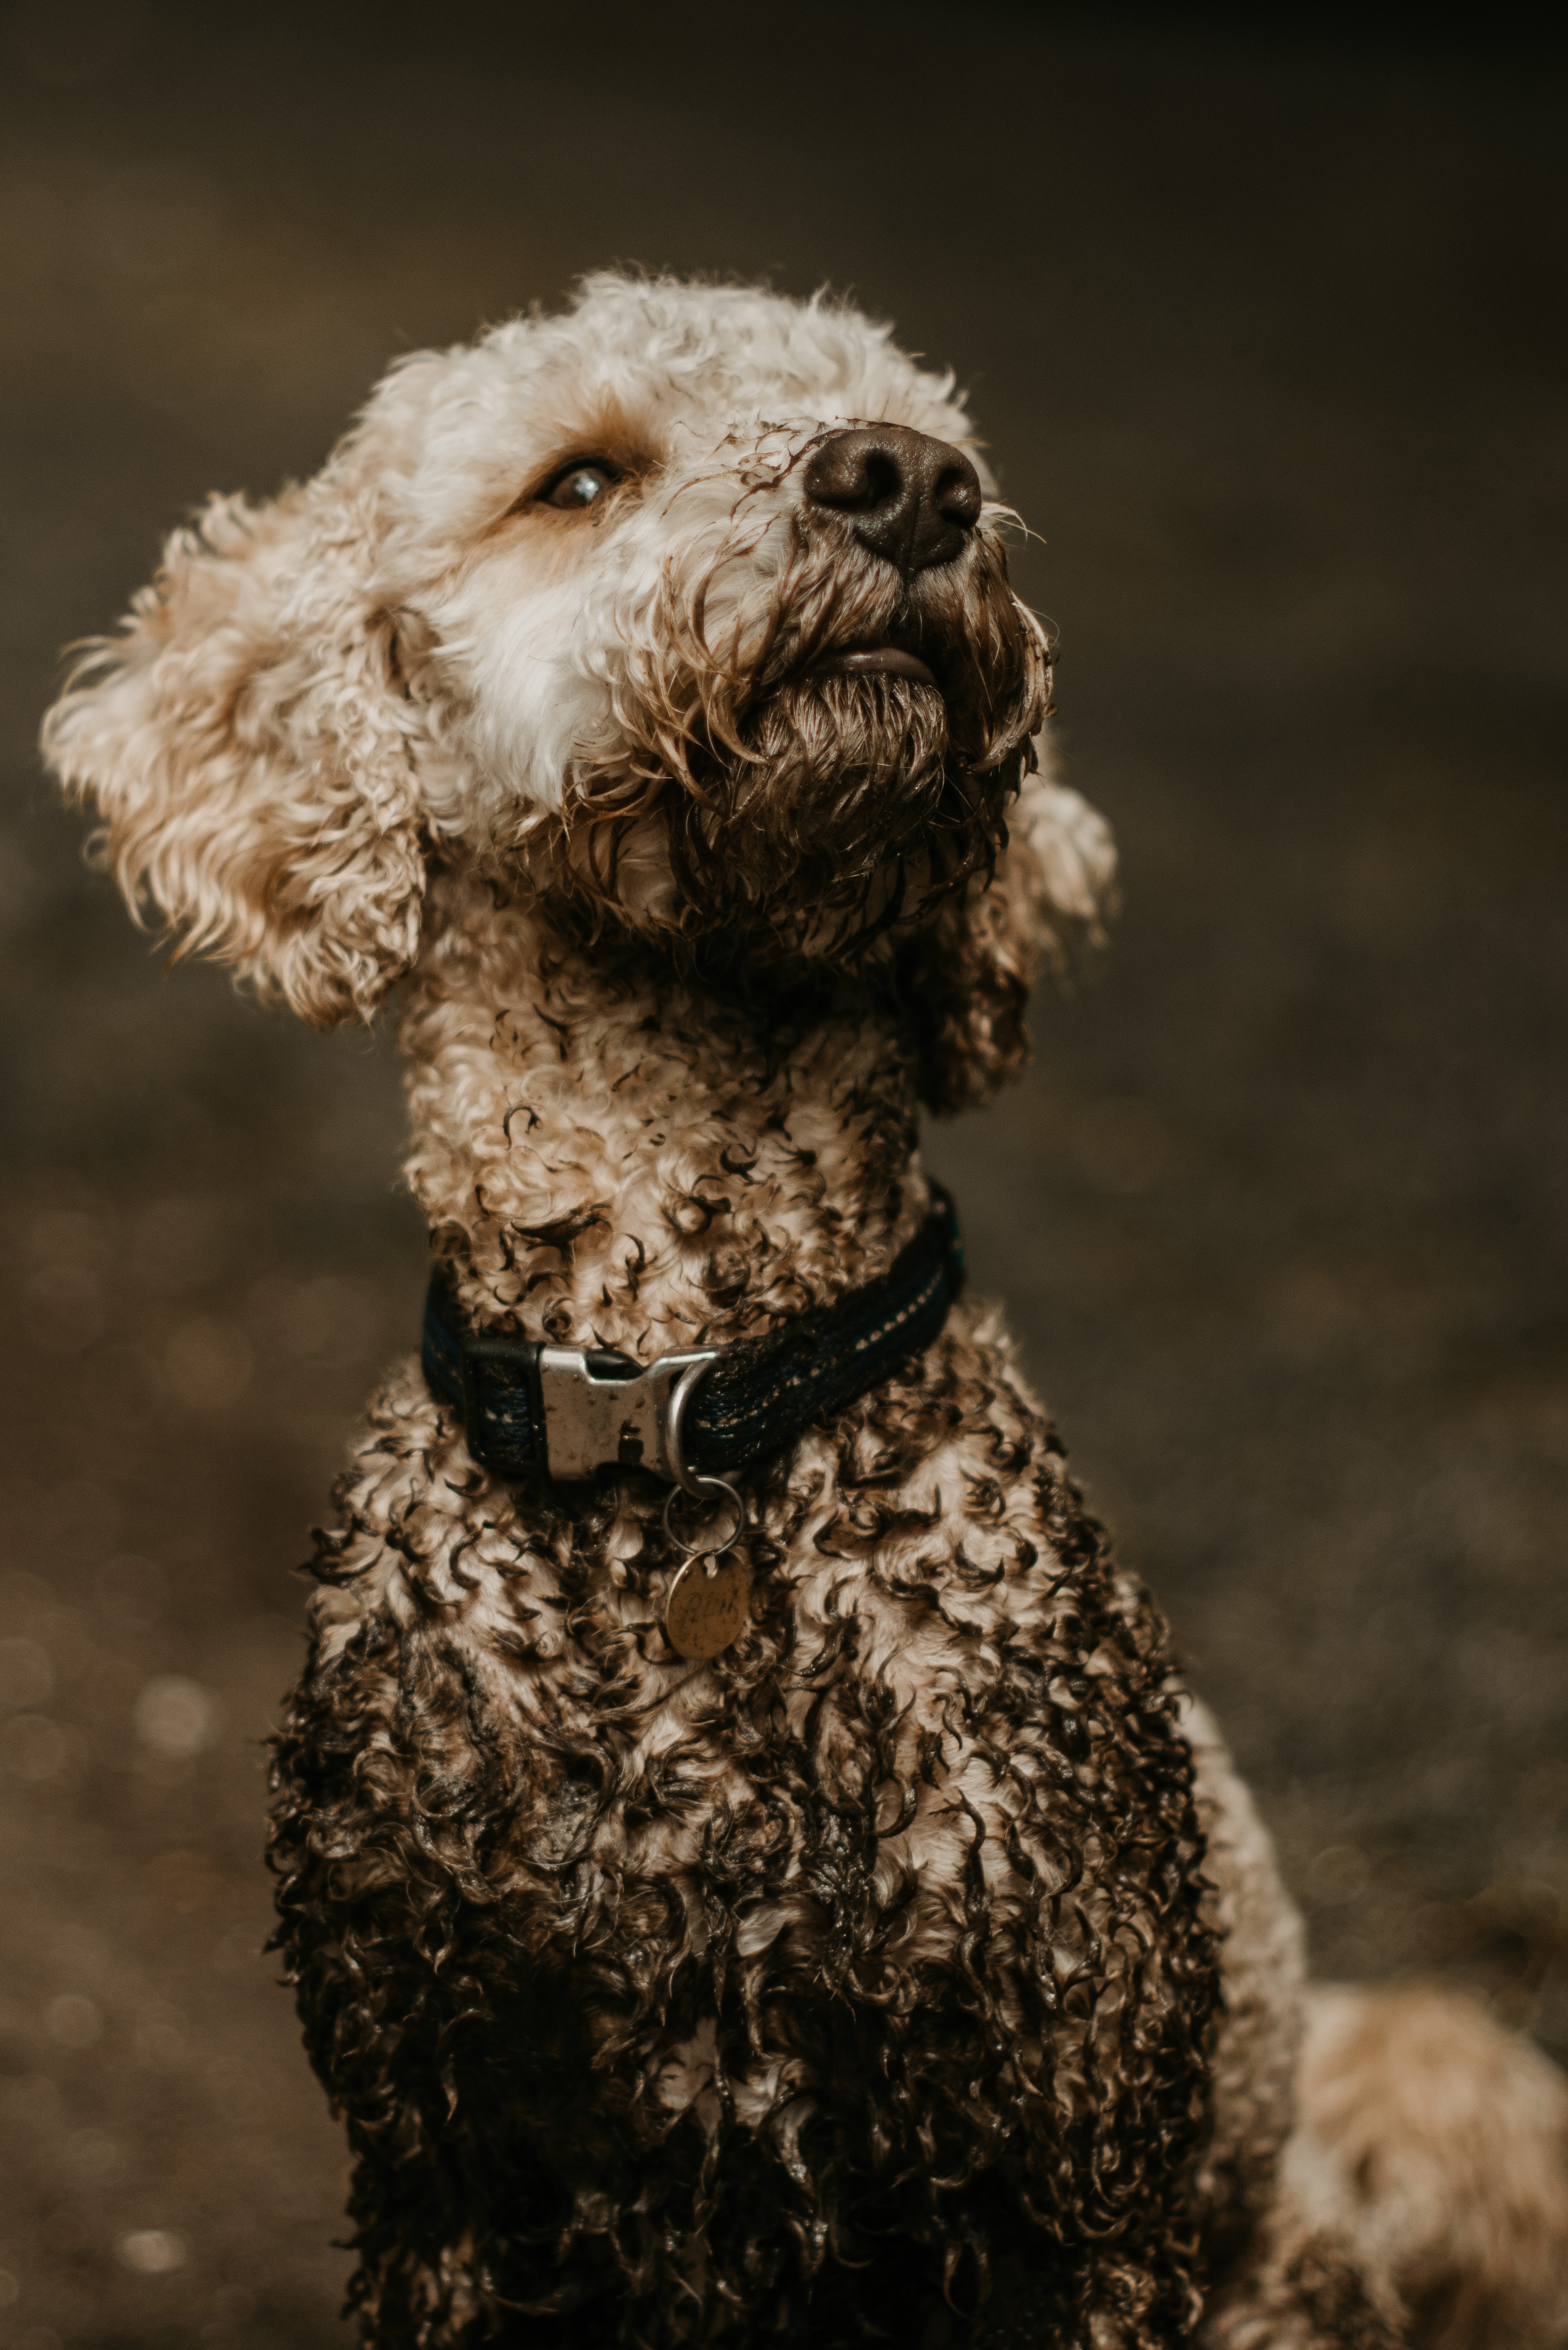 Finding The Best Products For Your Dirty Dog